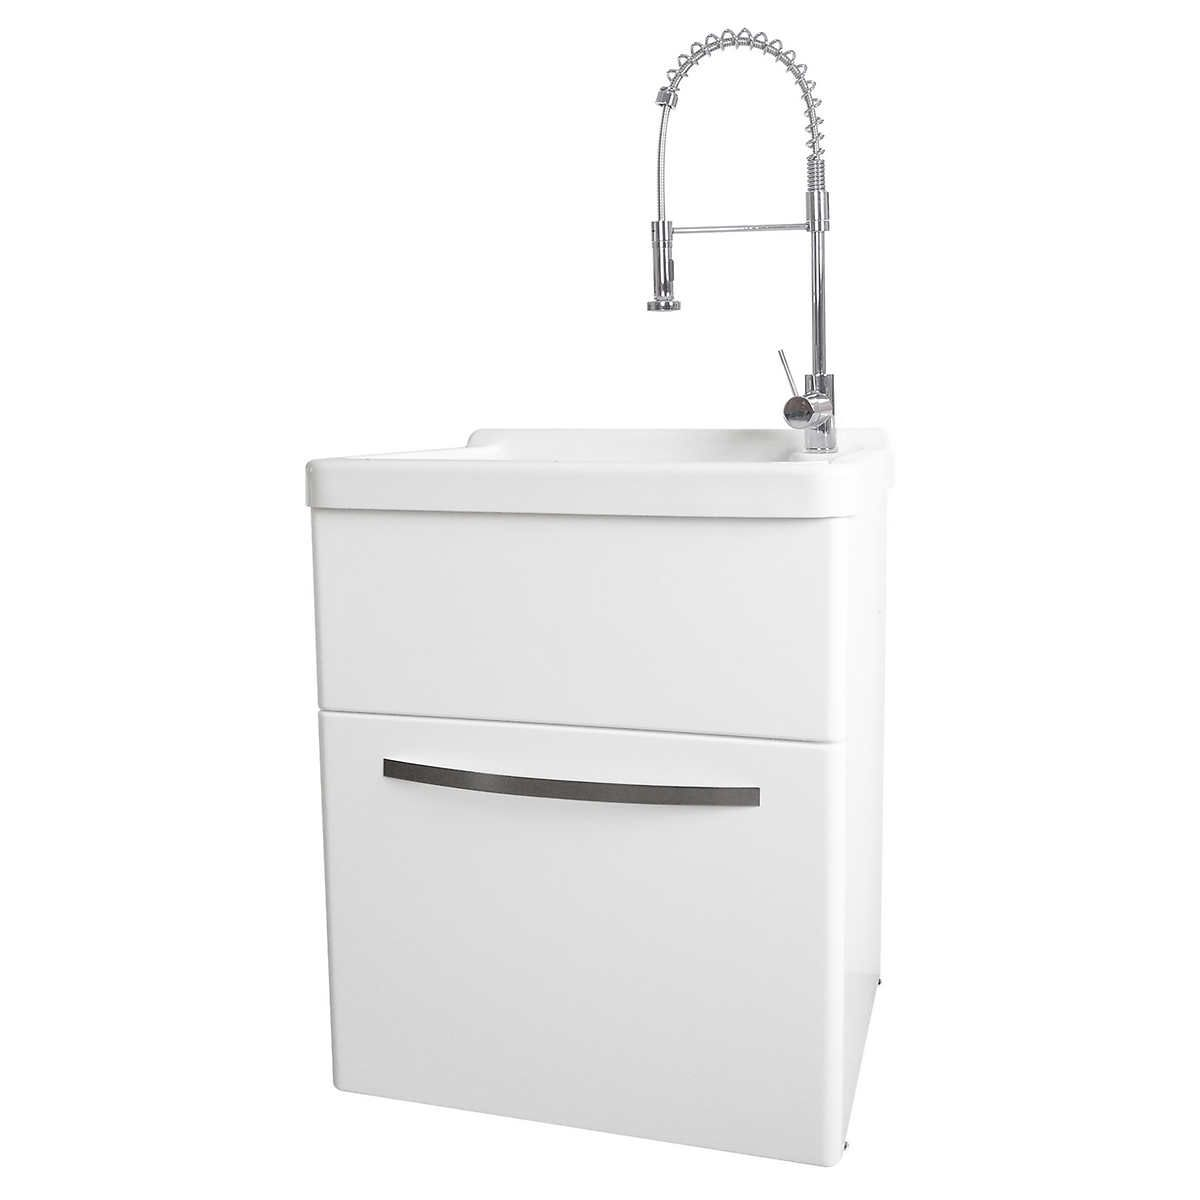 Transform Acrylic Utility Sink With Pull Down Faucet And Storage Cabinet In 2020 Utility Sink Faucets Utility Sink Acrylic Tub